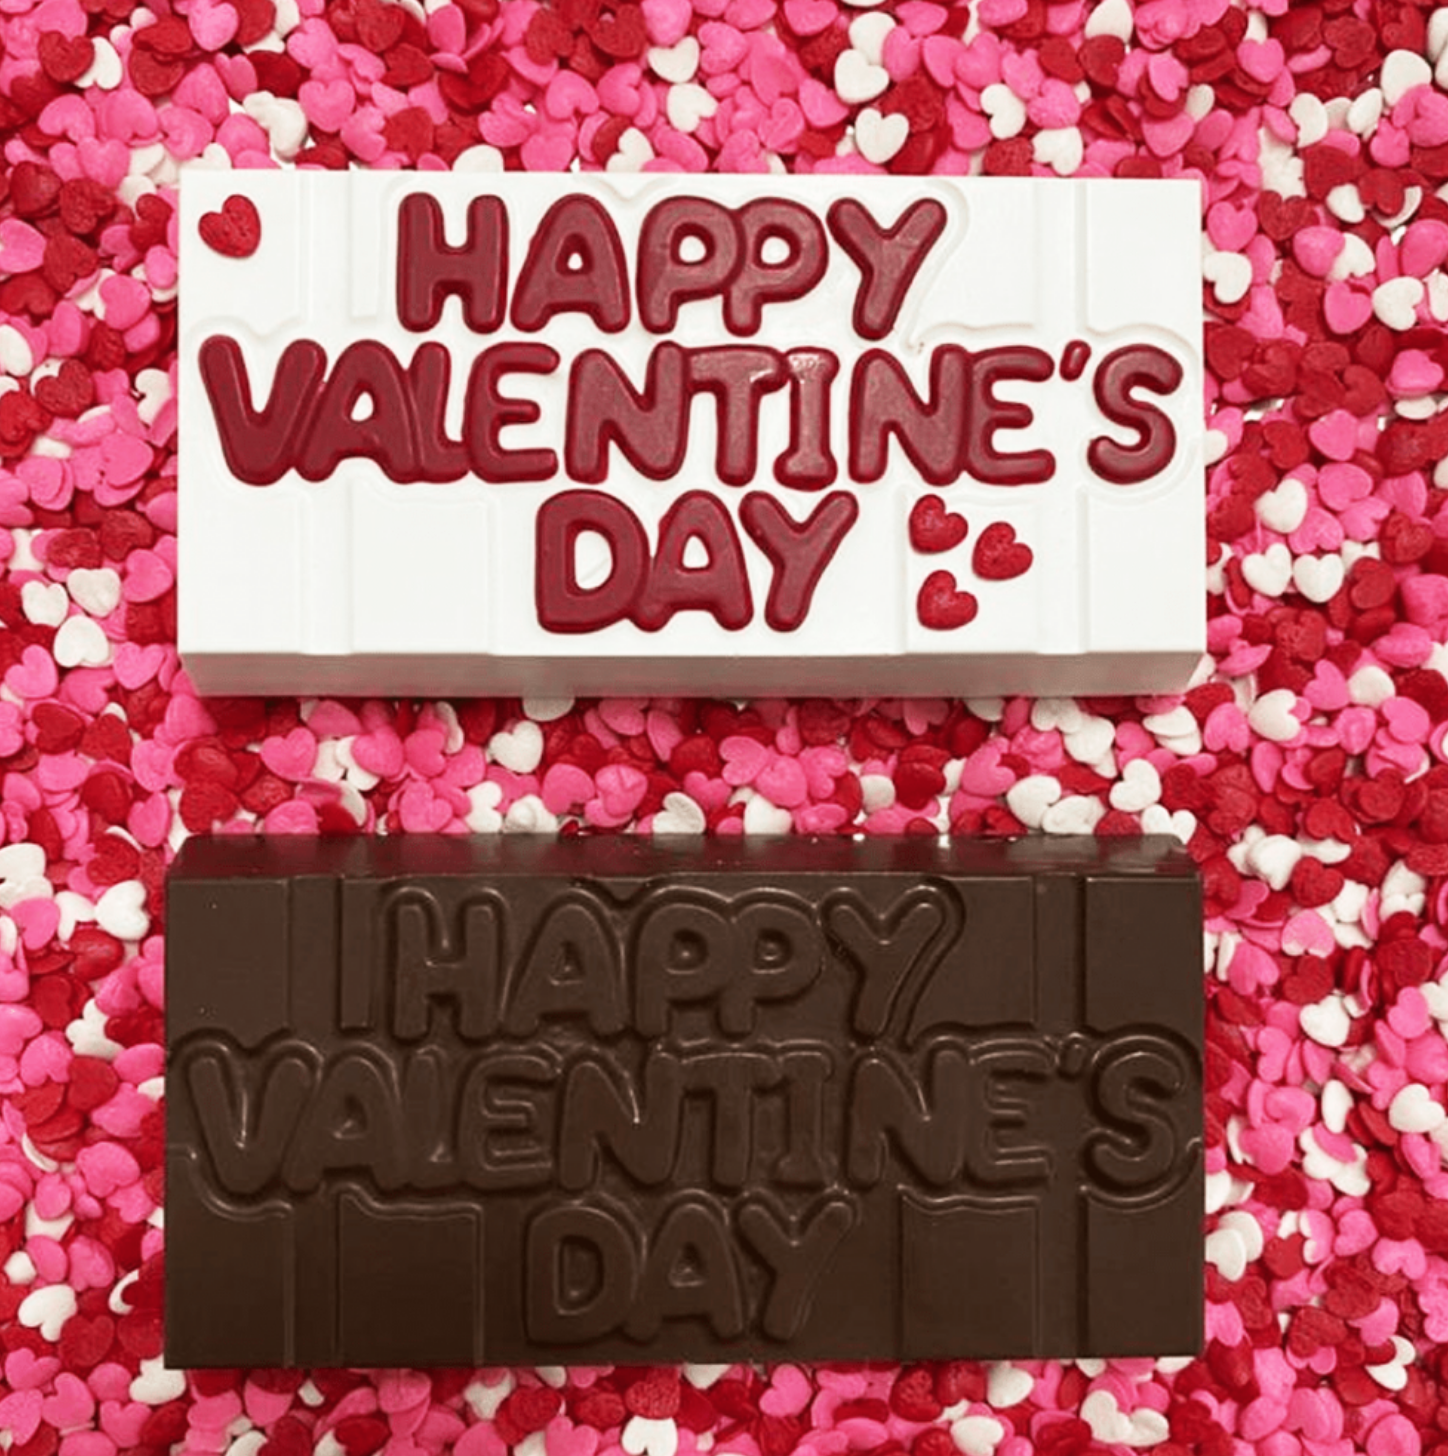 Happy Valentine's Day Tablet - 3 Part Mold - PRE-ORDER - Arriving Feb. 5